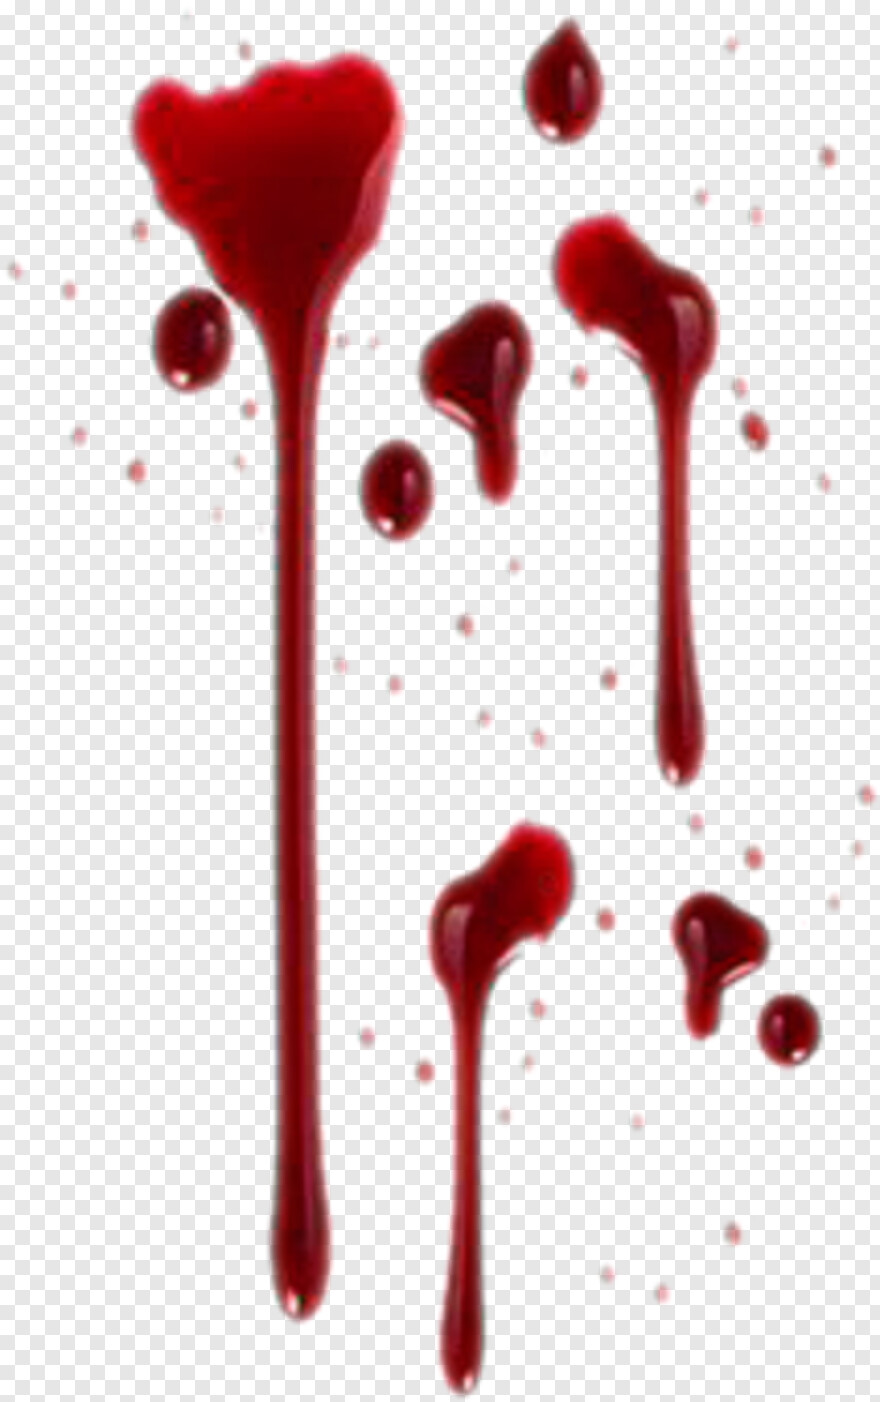 Realistic Dripping Blood - Tehran, Png Download - 350x346 ...